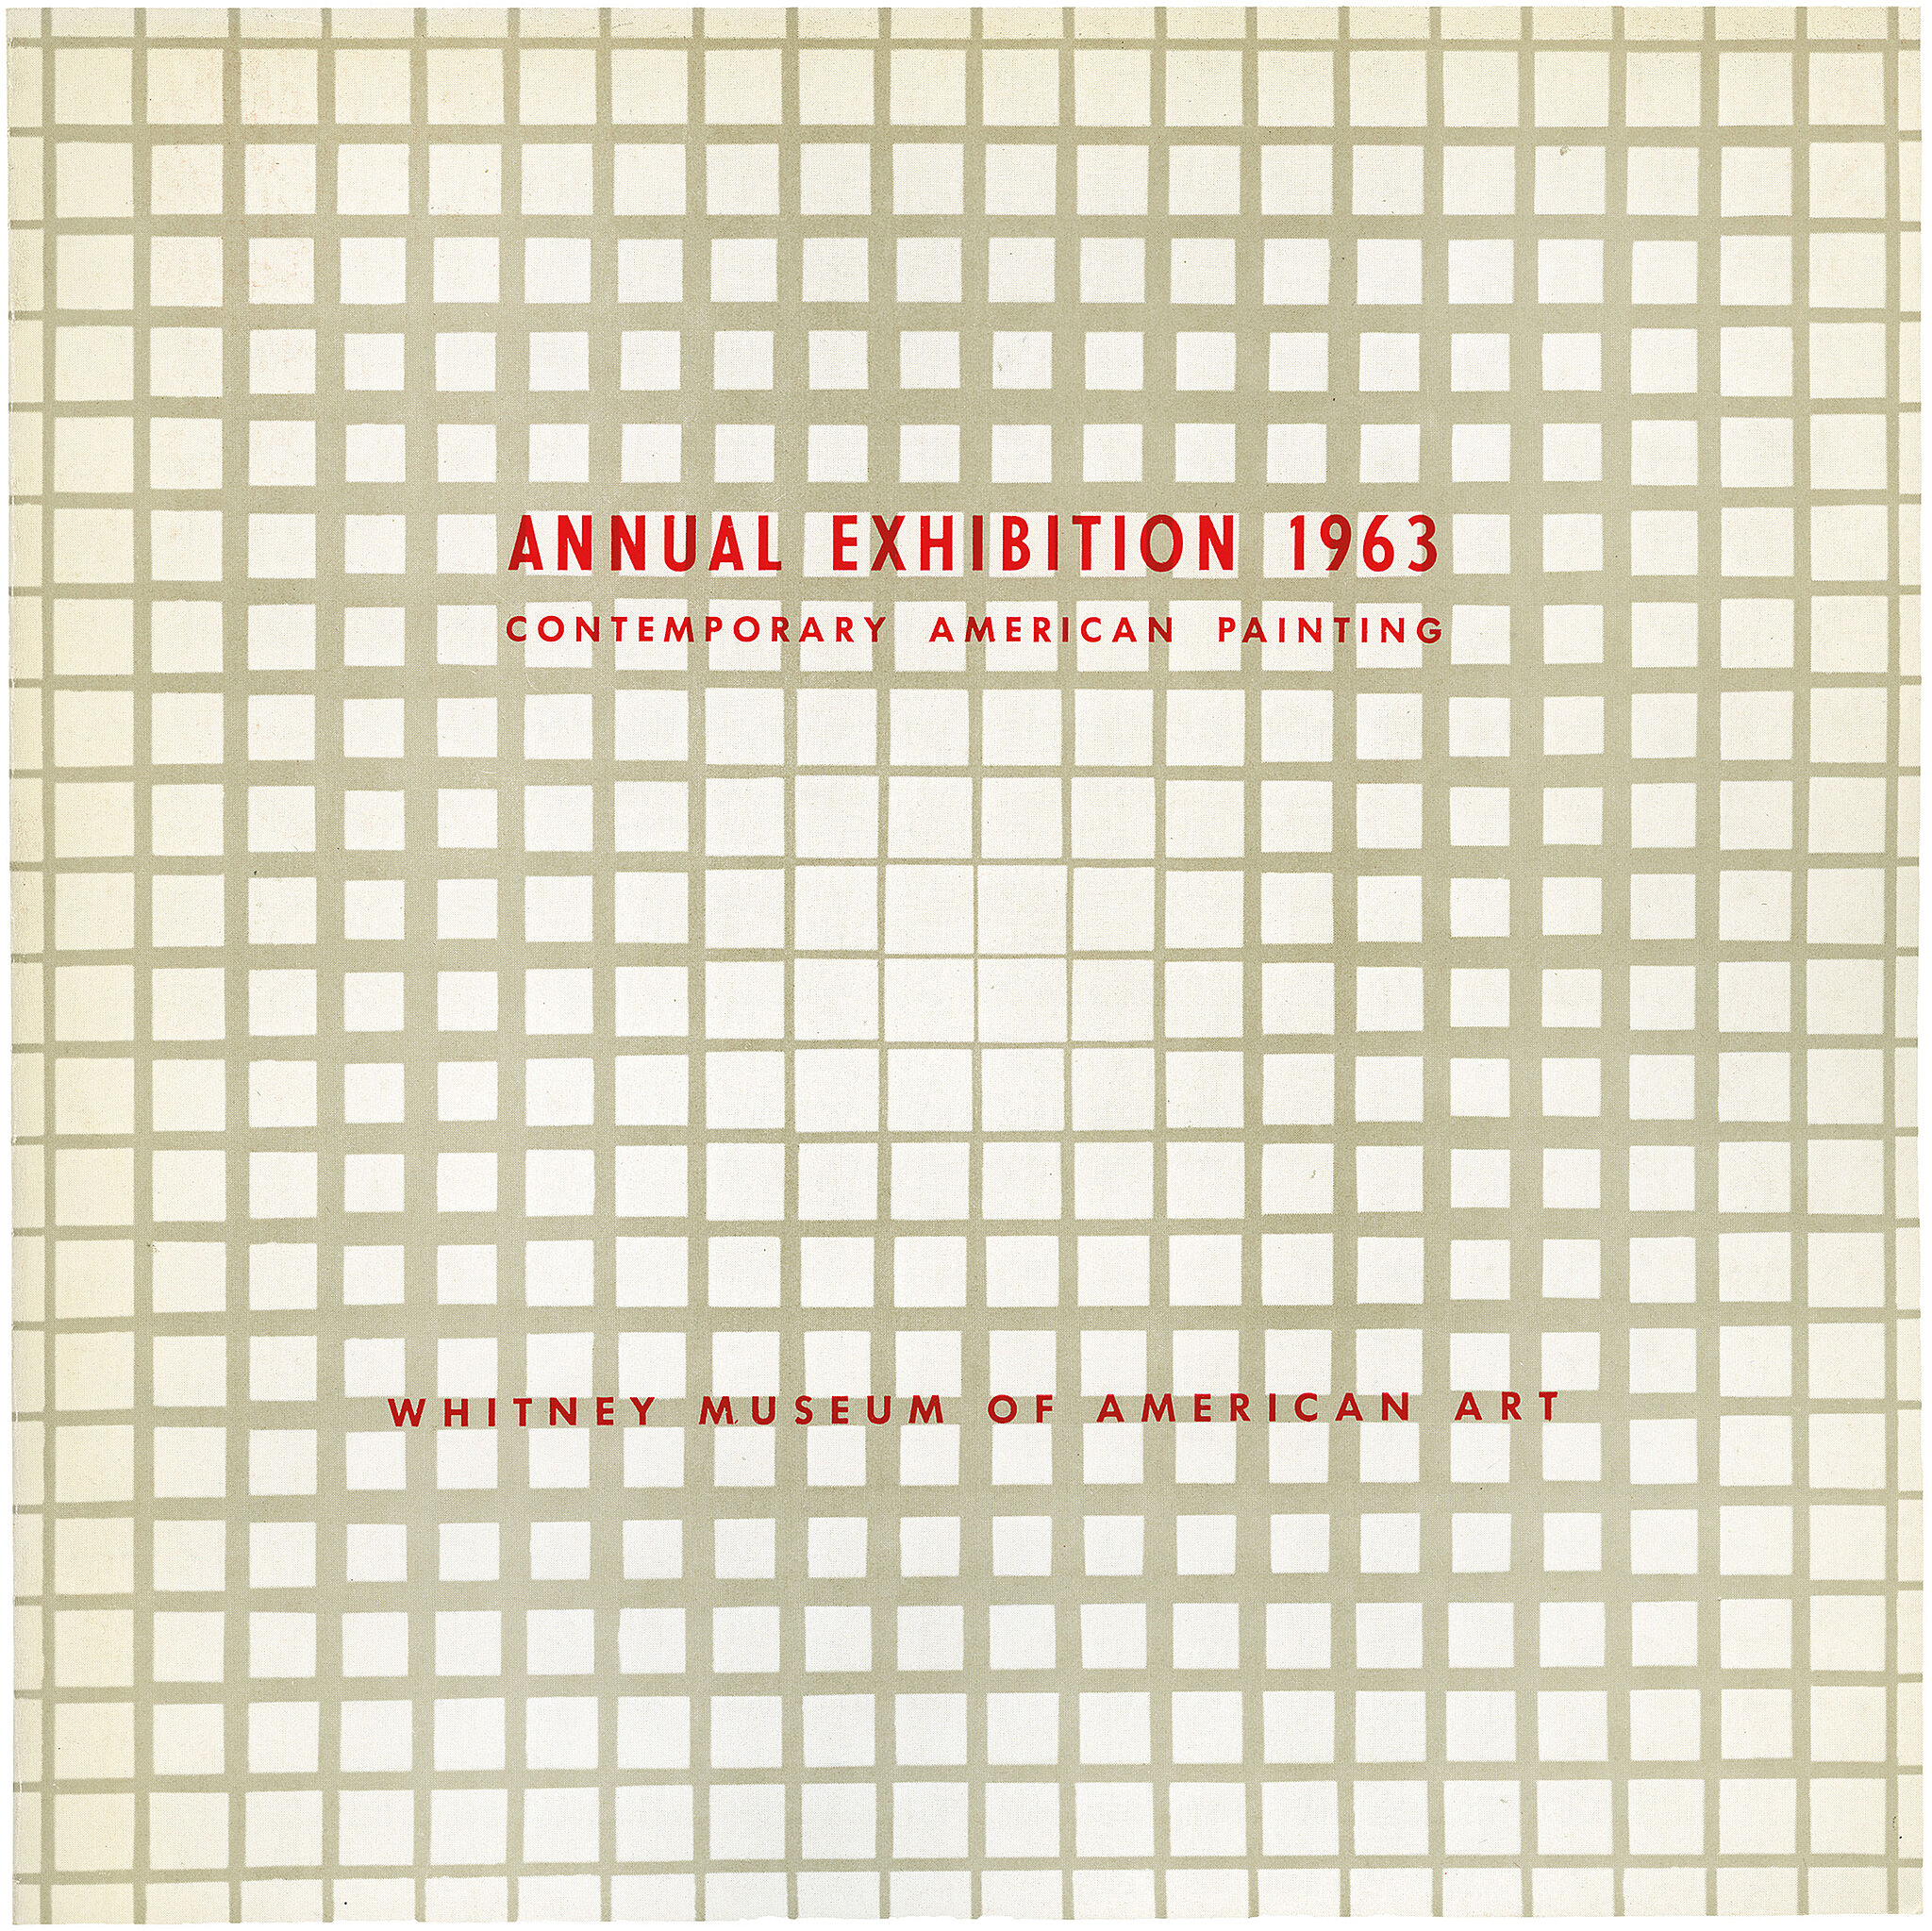 Catalogue cover for Annual Exhibition 1963: Contemporary American Painting